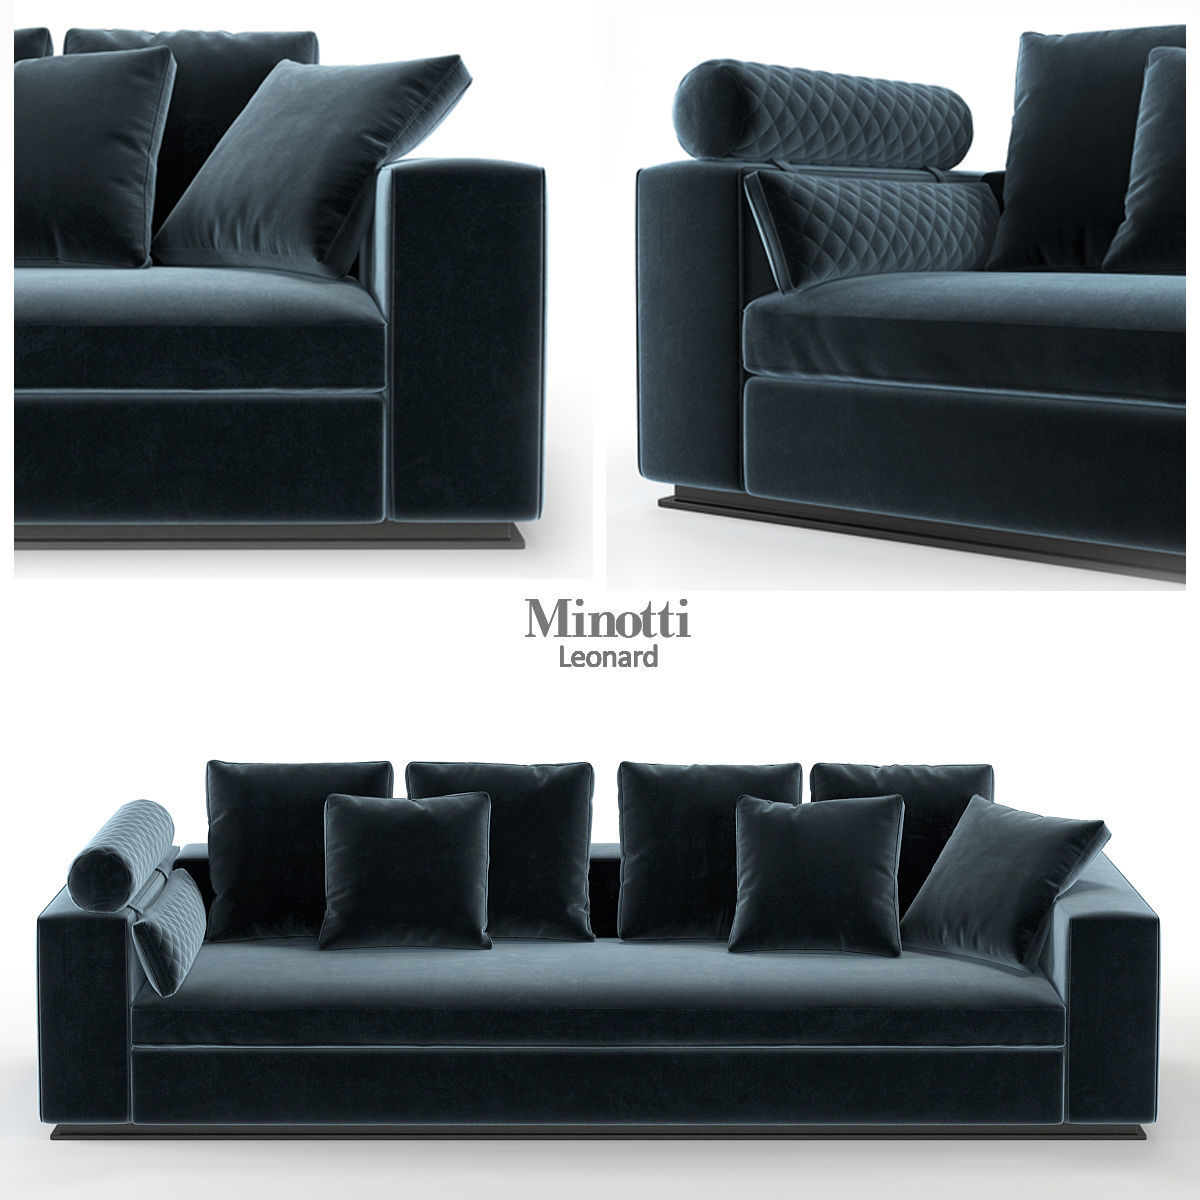 Best Buy Military Discount >> couch Minotti Leonard DIVANO CM 293 3D | CGTrader